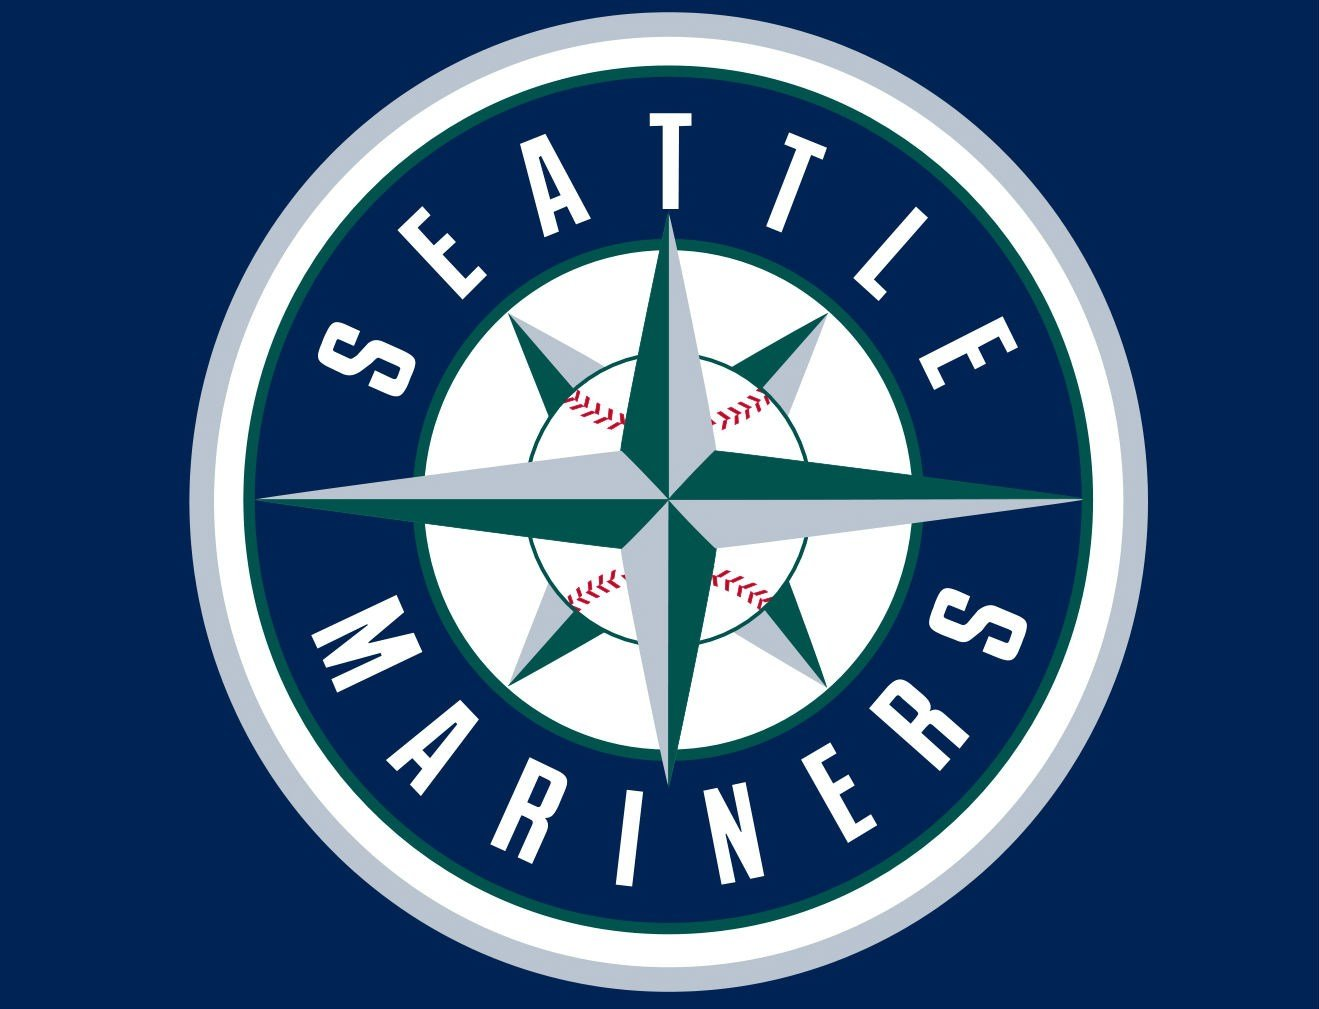 Mariners one game over .500 for 1st time this season